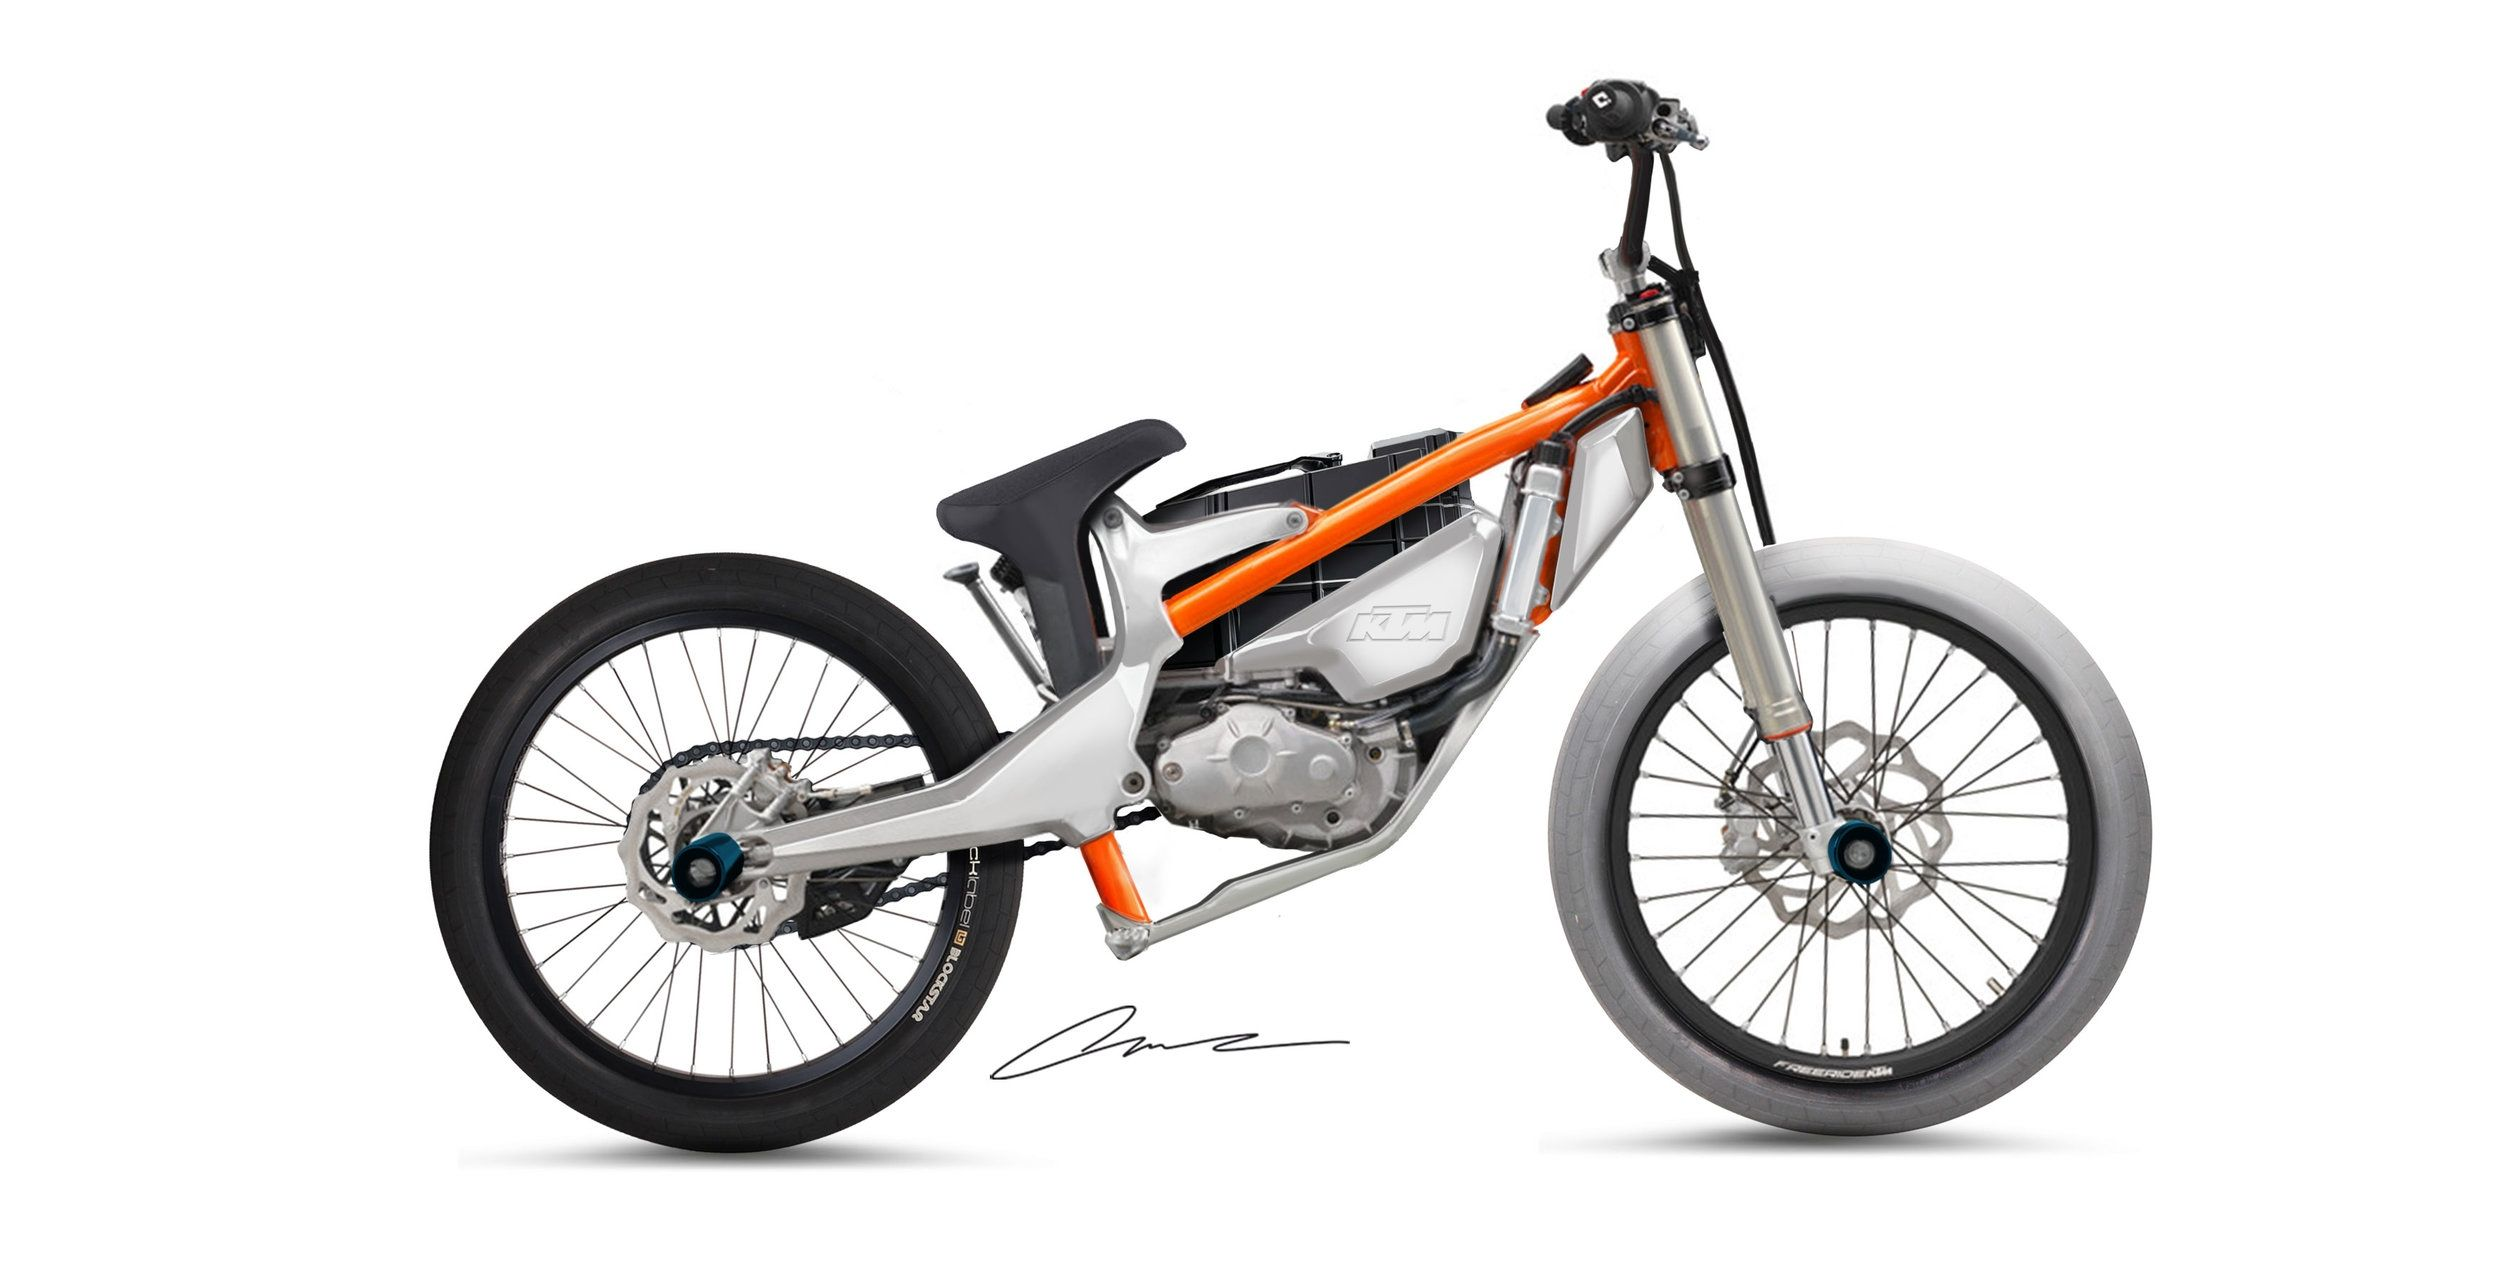 Ktm X Freeride E Electric Motorcycle Electric Motorcycle E Electric Motorcycle